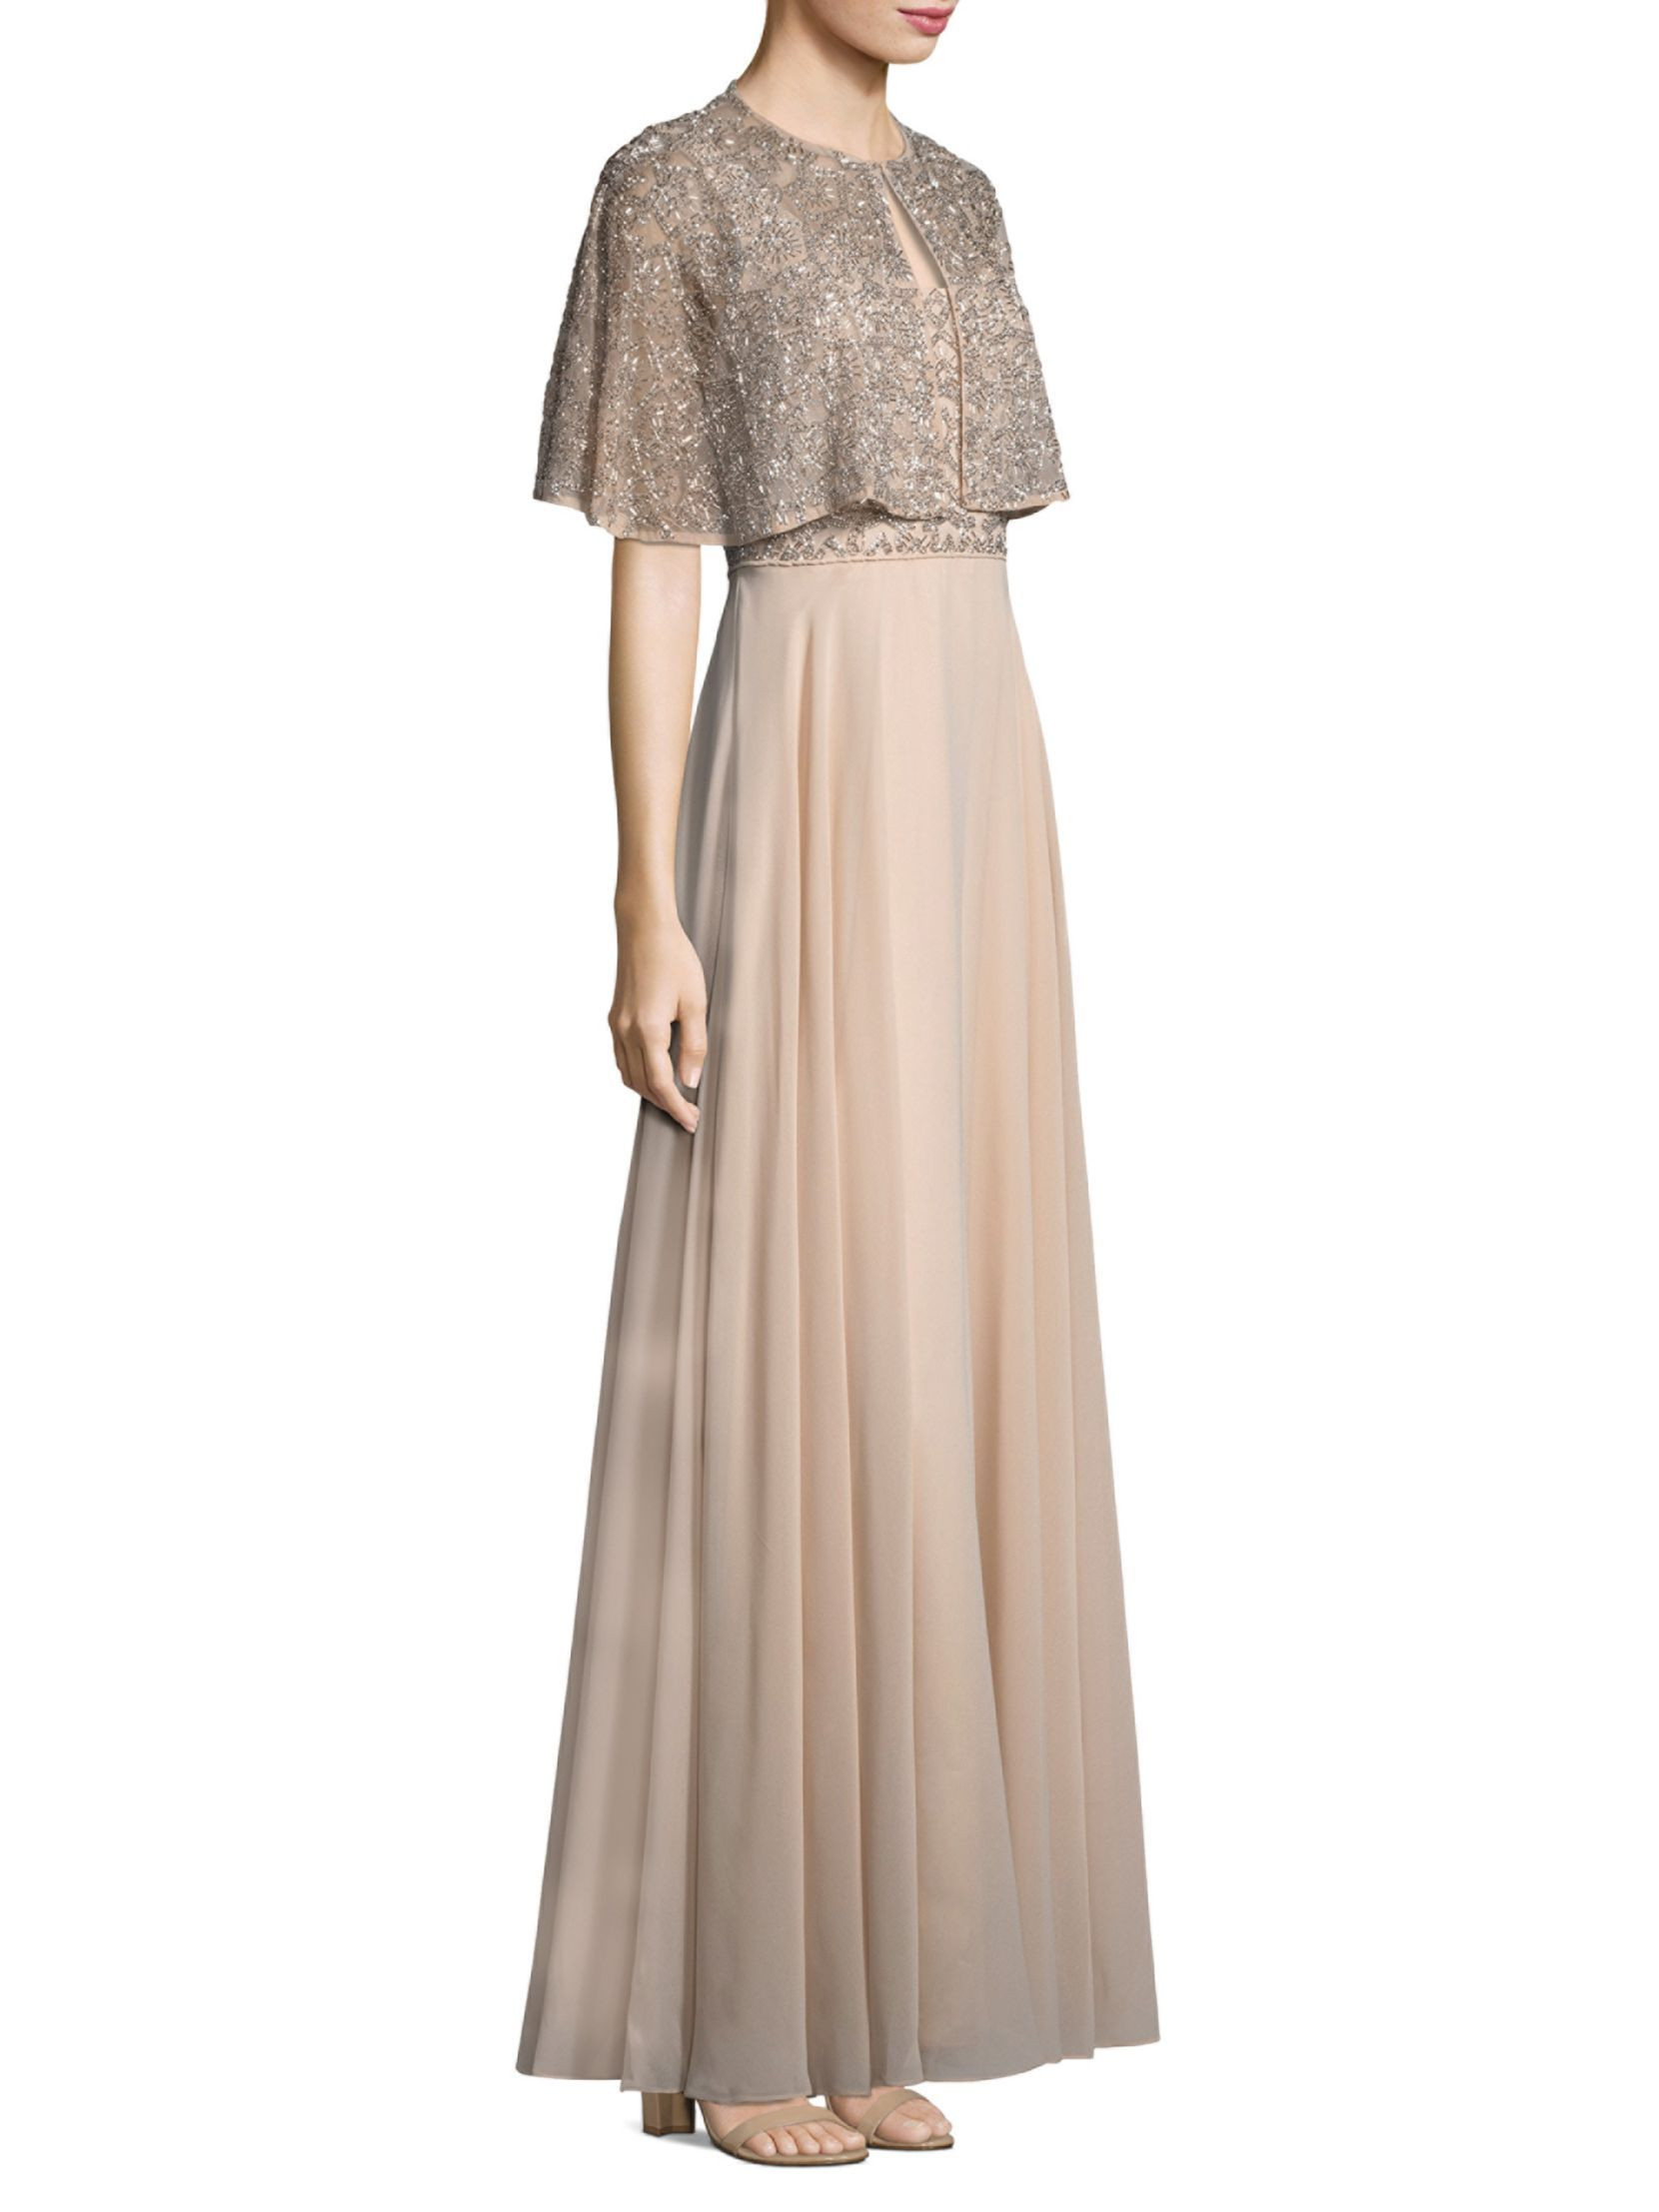 Aidan mattox beaded aline gown and cape set fashion fit